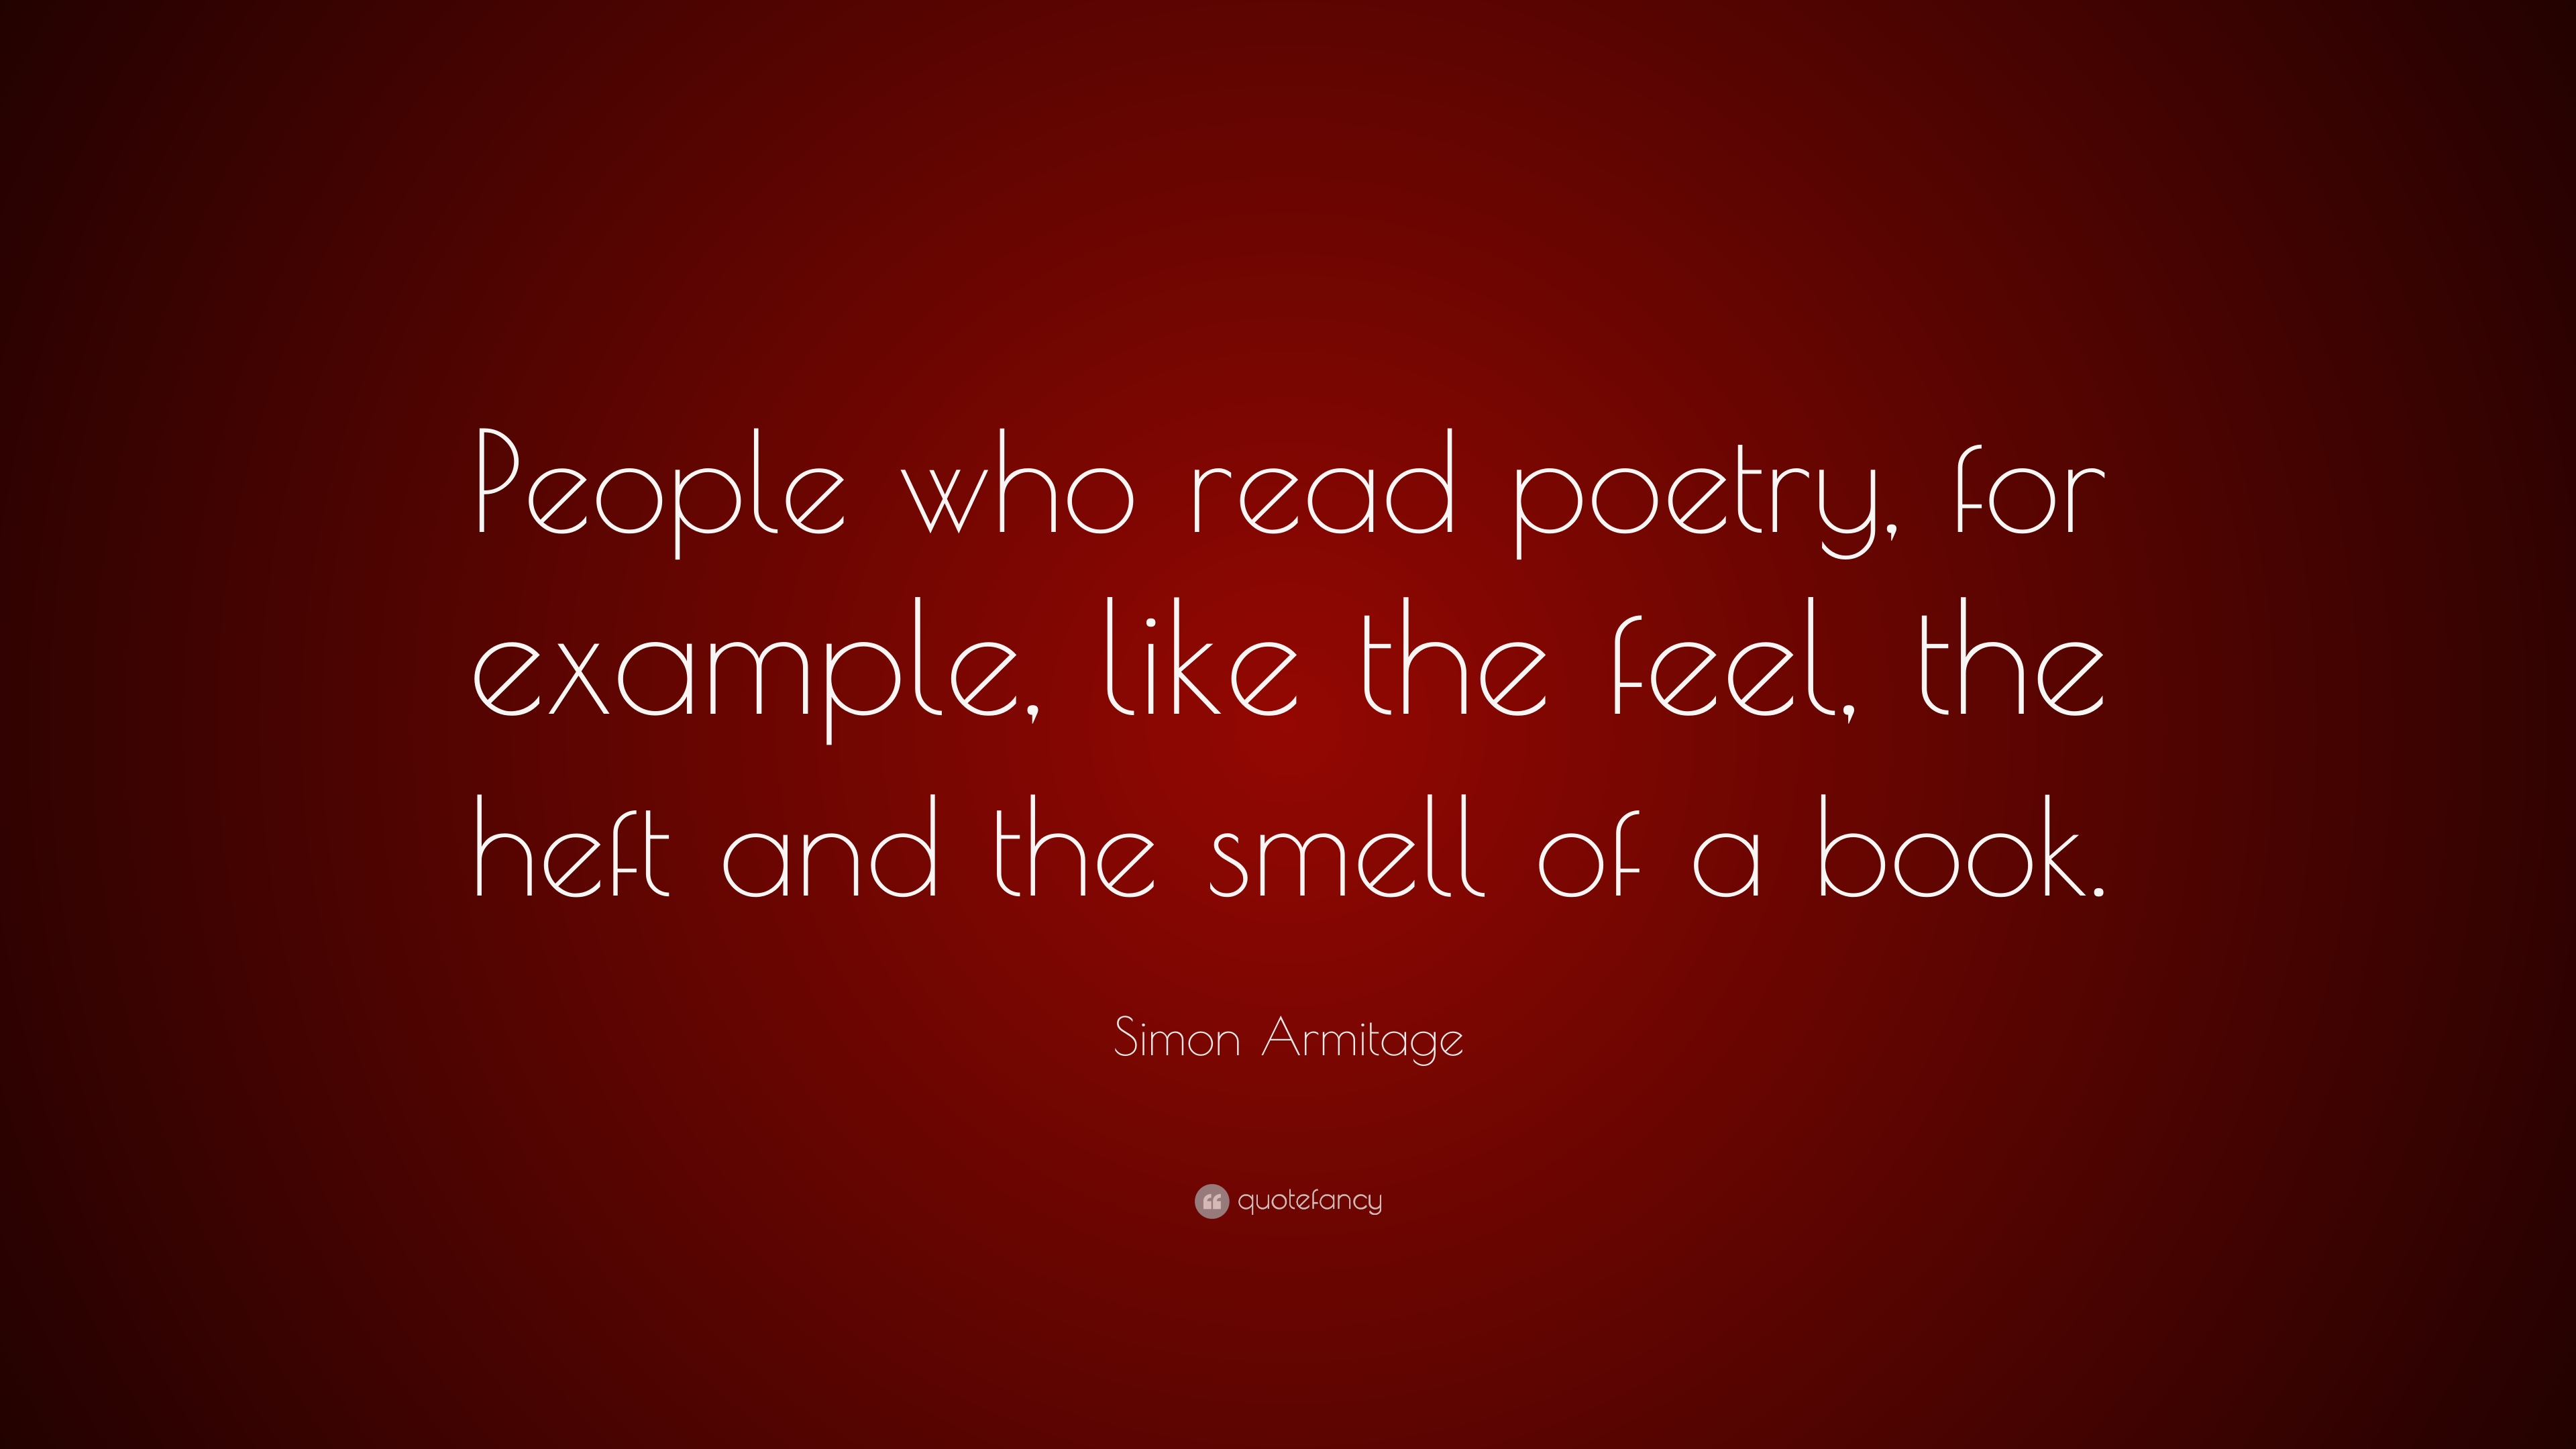 Elegant Simon Armitage Quote: U201cPeople Who Read Poetry, For Example, Like The Feel